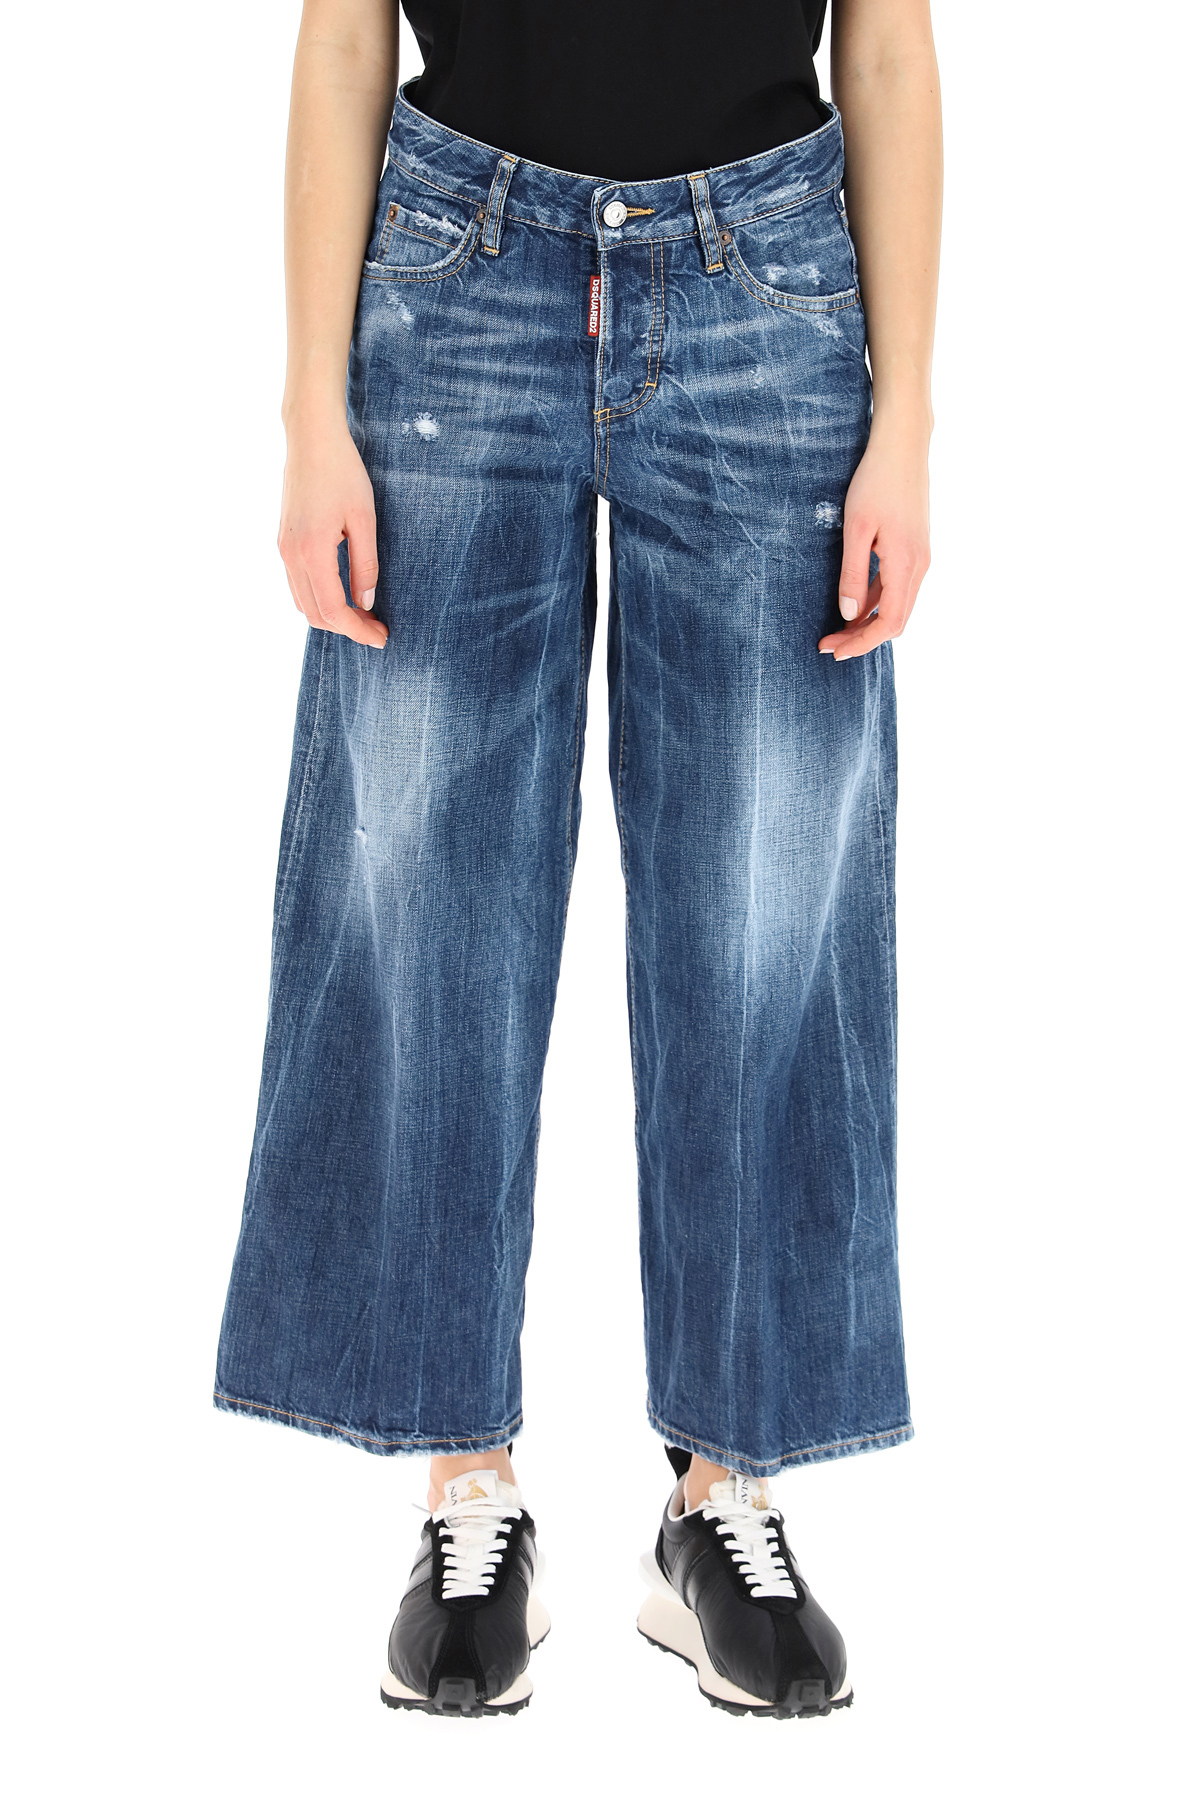 Dsquared2 jeans waist page